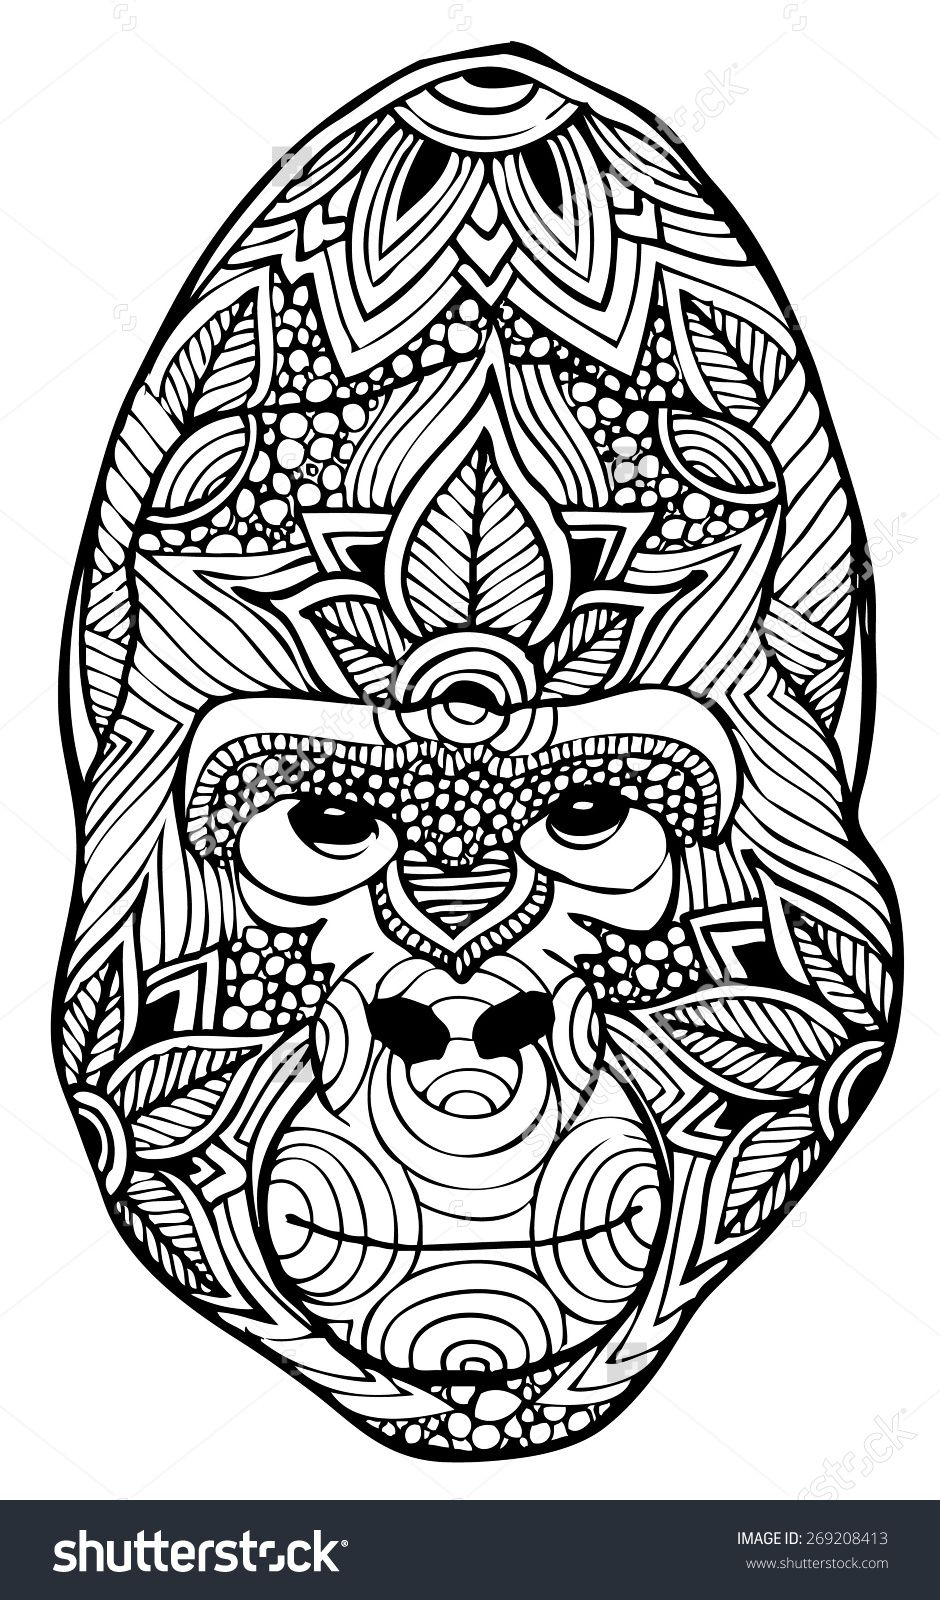 Gorilla coloring page | Animal Coloring Pages for Adults | Pinterest